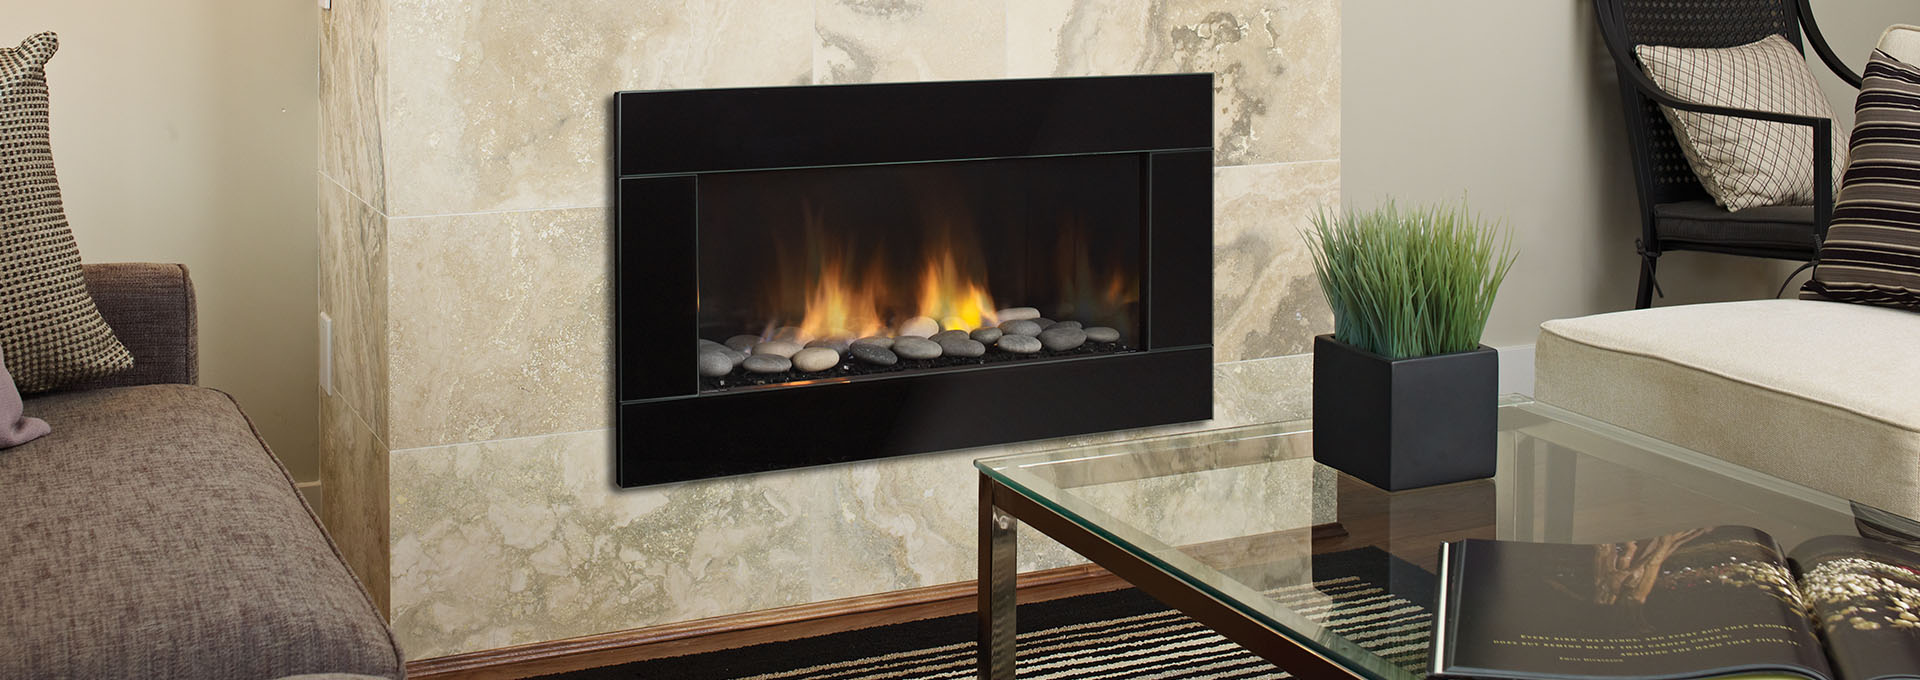 Horizon HZ30E Gas Fireplace-2